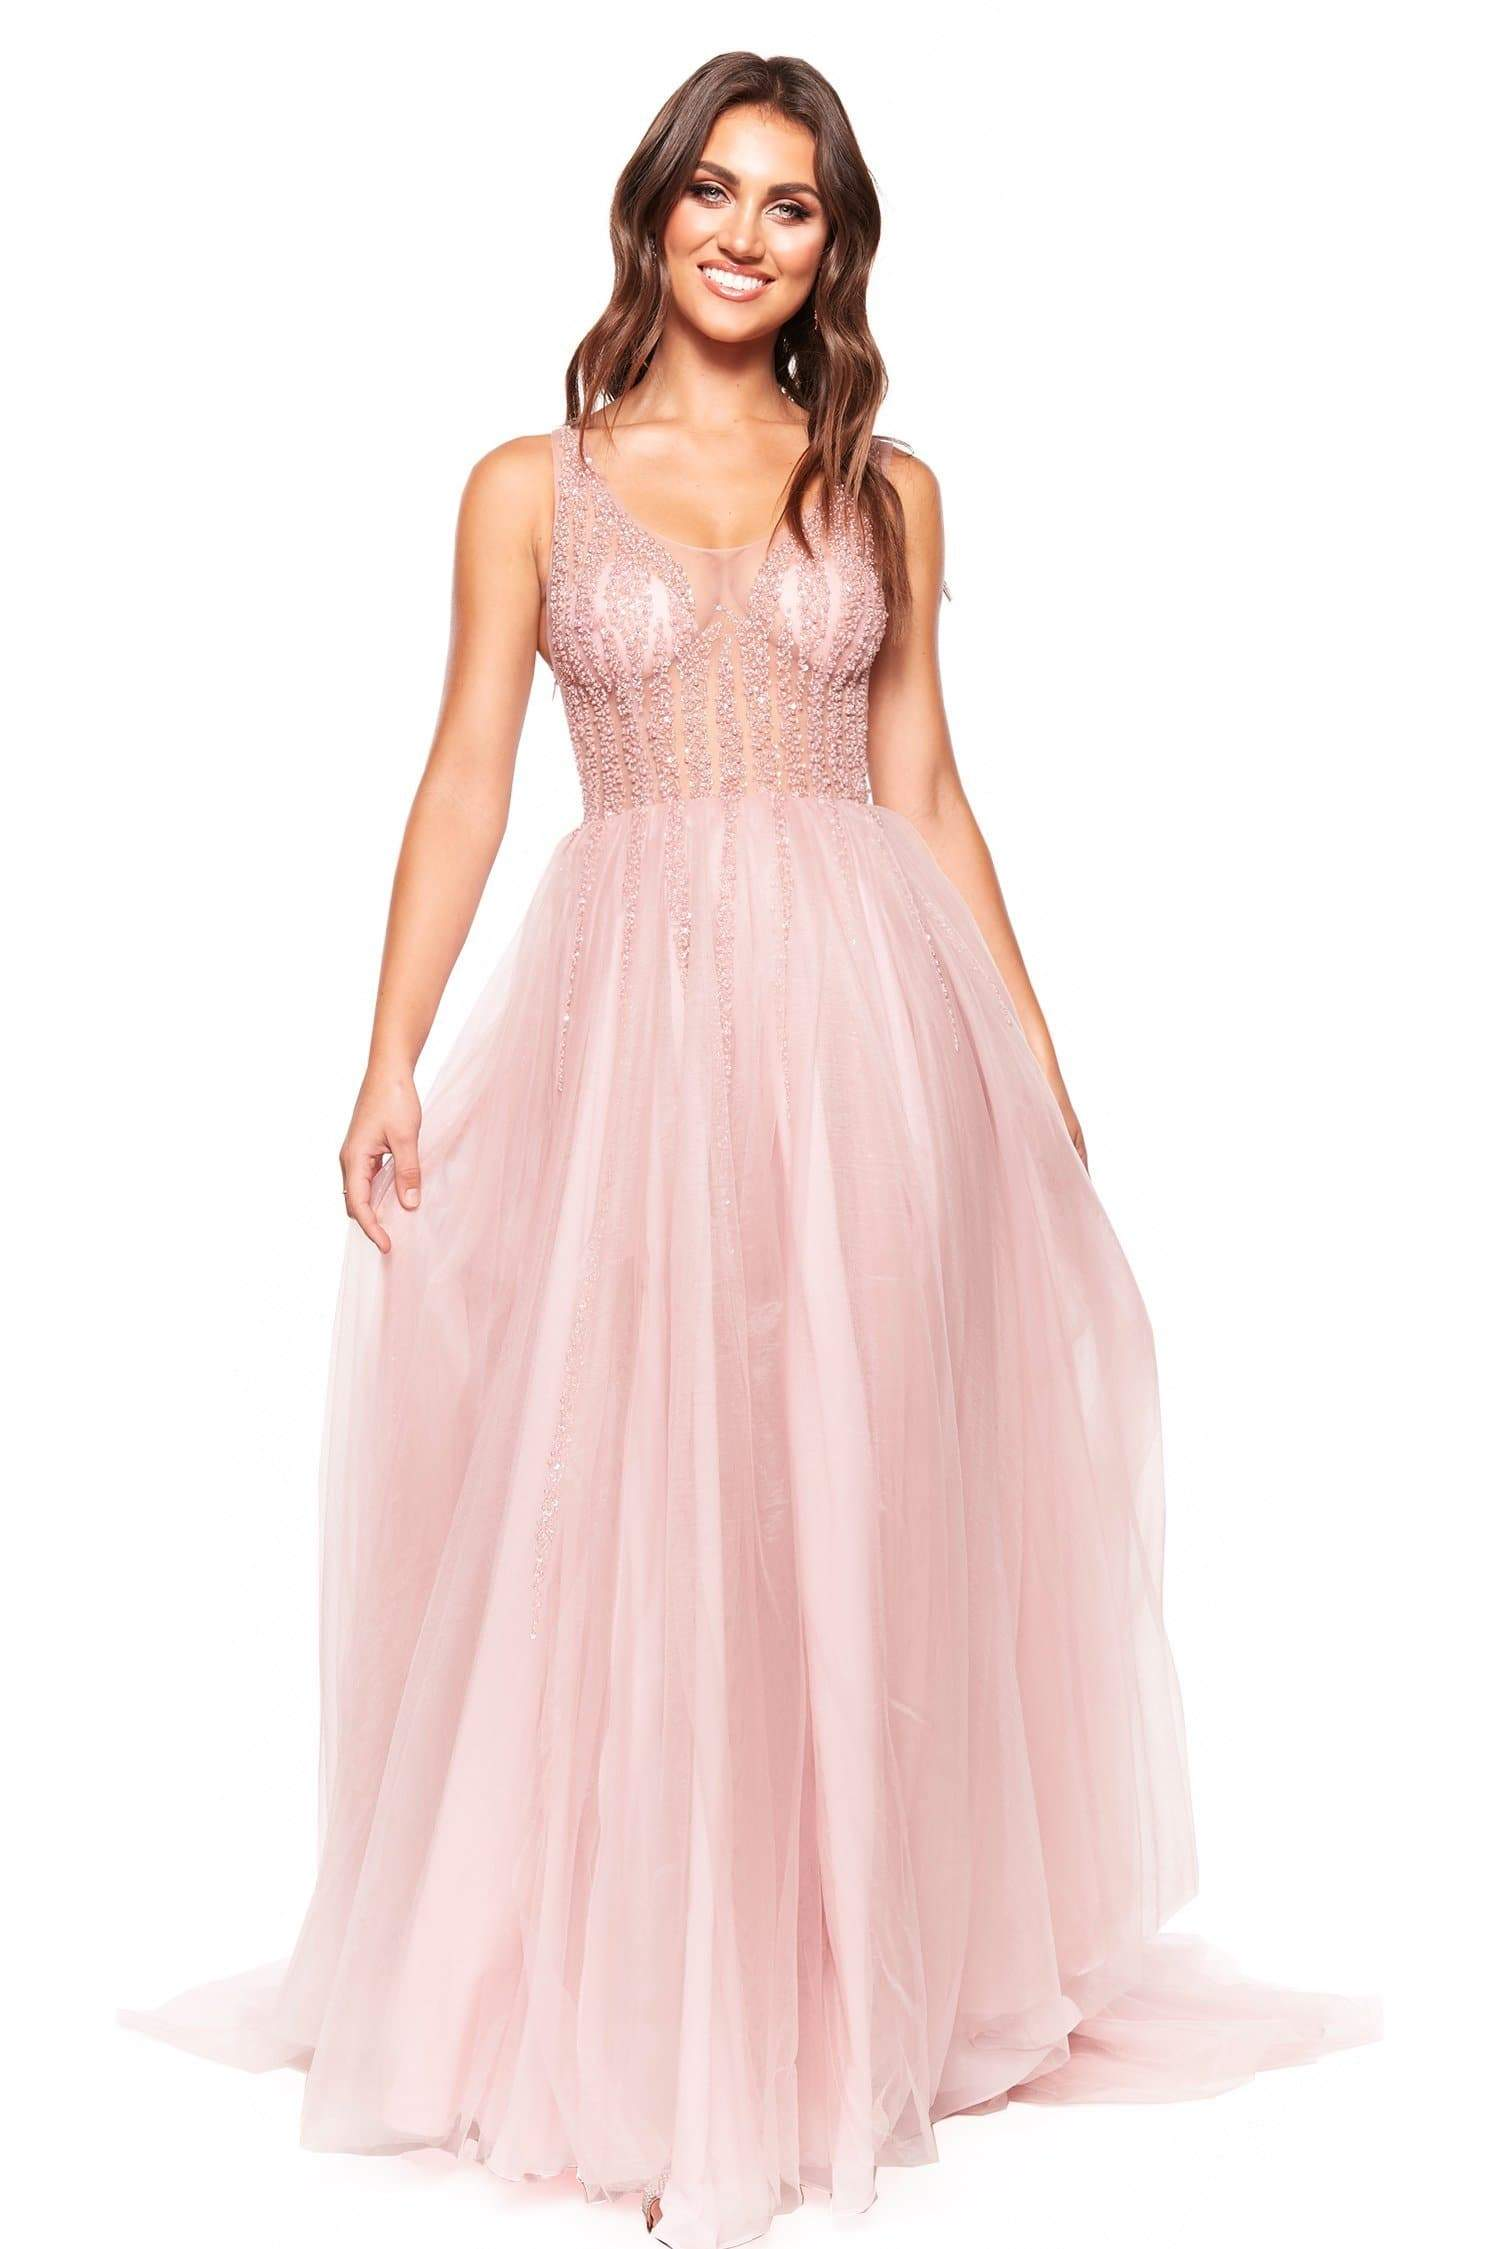 A&N Luxe Rosie - Pink Tulle Gown with Sheer Beaded Bodice